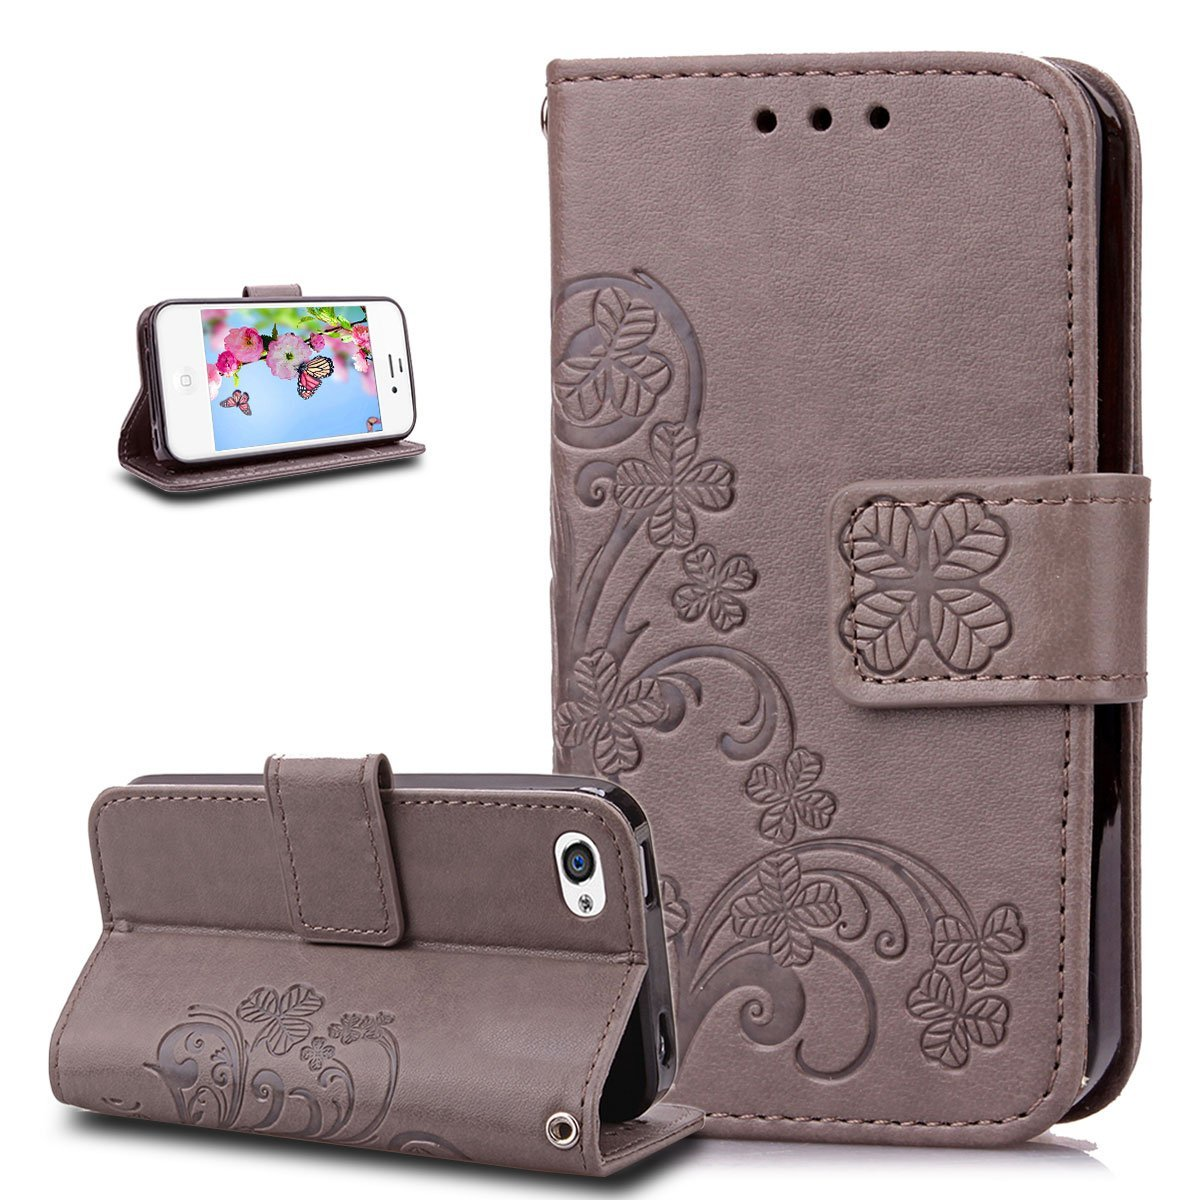 iPhone 4S Case,iPhone 4 Case,ikasus Embossing Clover Flower PU Leather Fold Wallet Pouch Case Premium Leather Wallet Flip Stand Credit Card Holders Case Cover for Apple iPhone 4S / 4,Gray